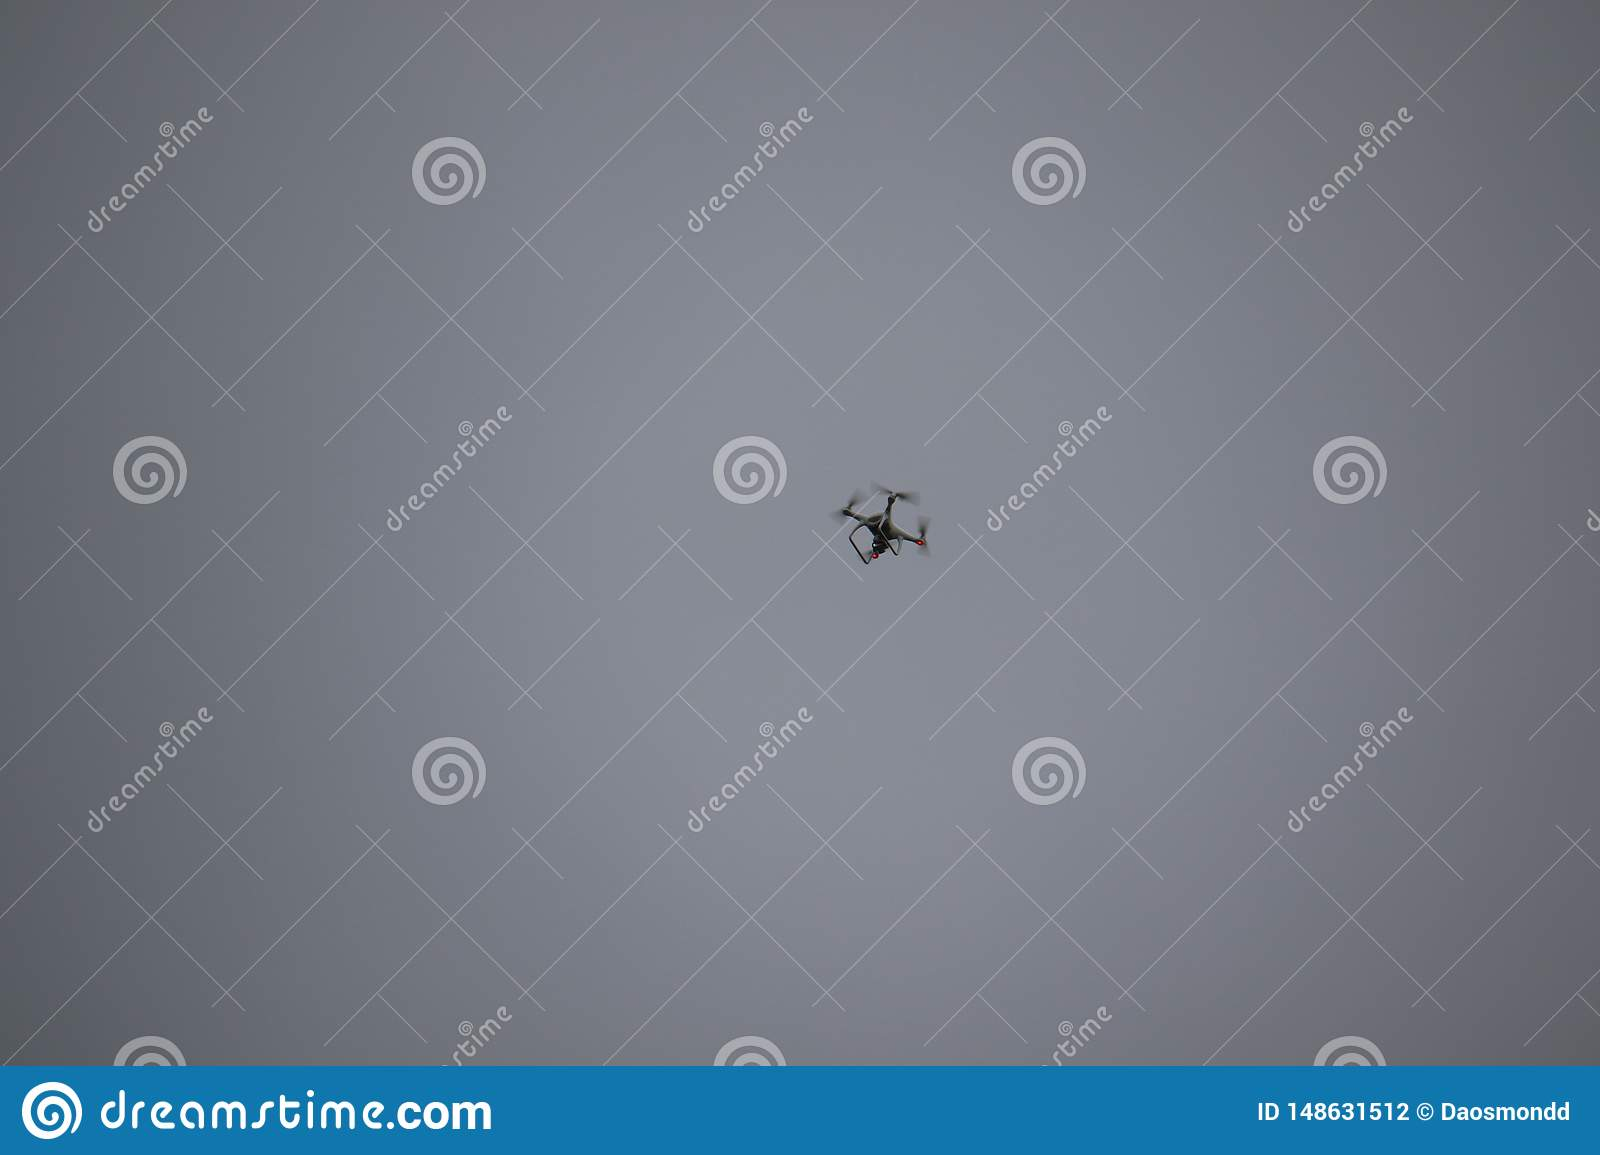 A drone hovering in the sky